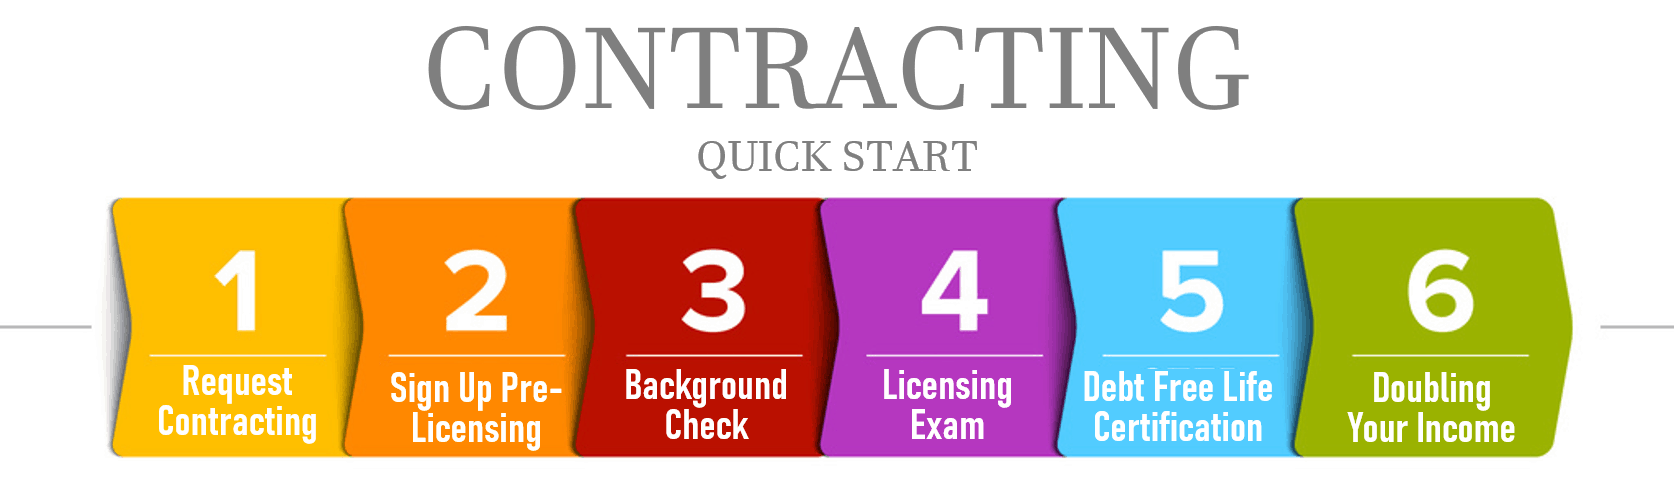 3. Enroll in Licensing Class & Get Contracted